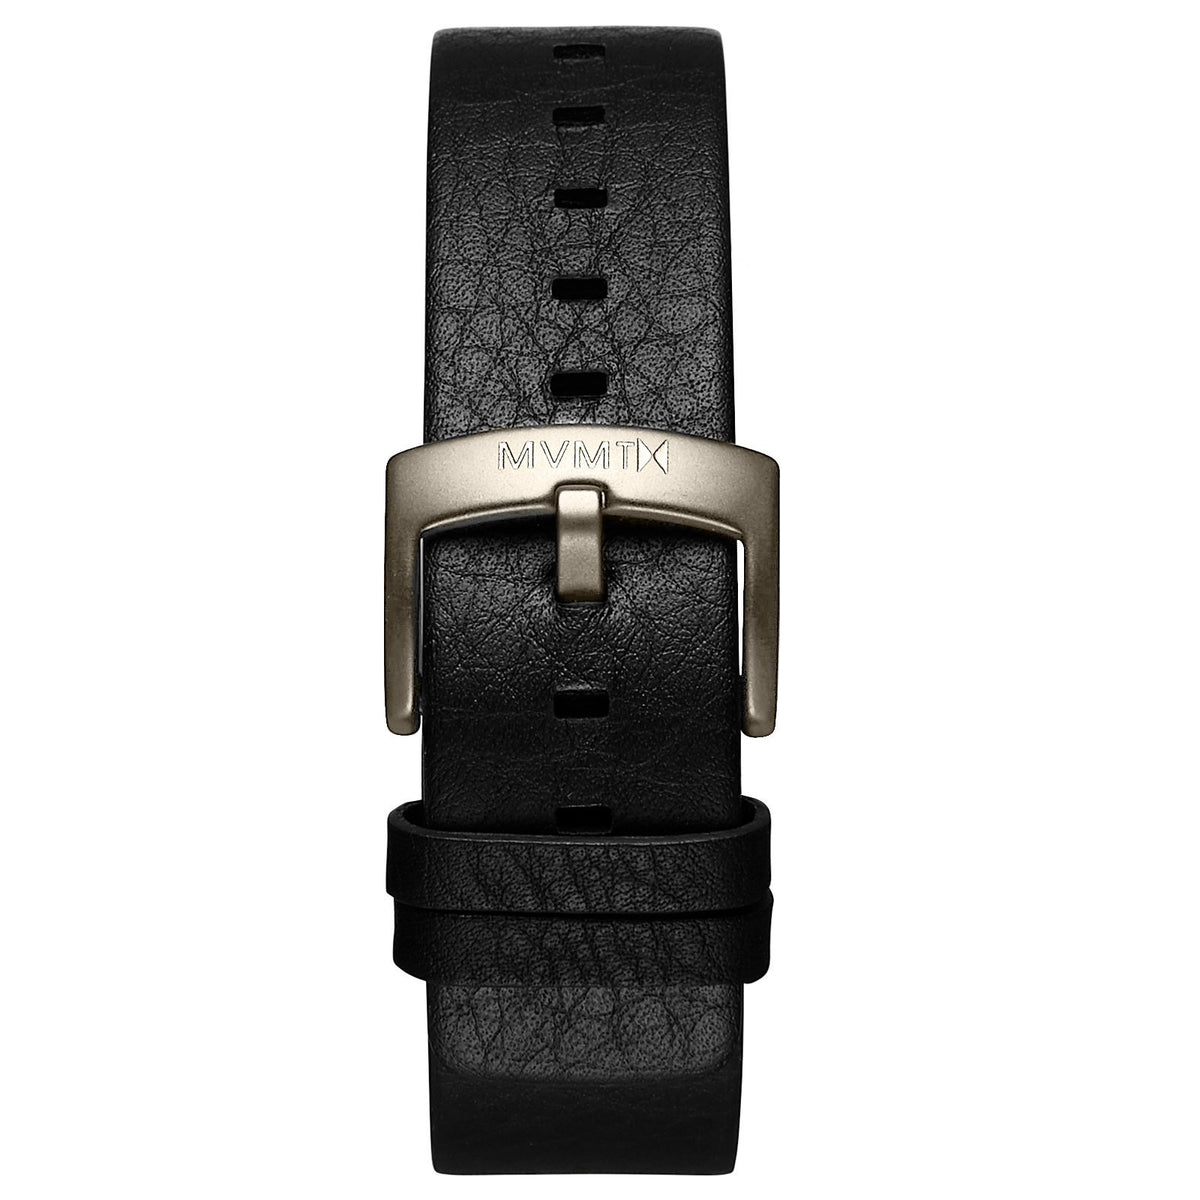 Blacktop - 24mm Black Leather